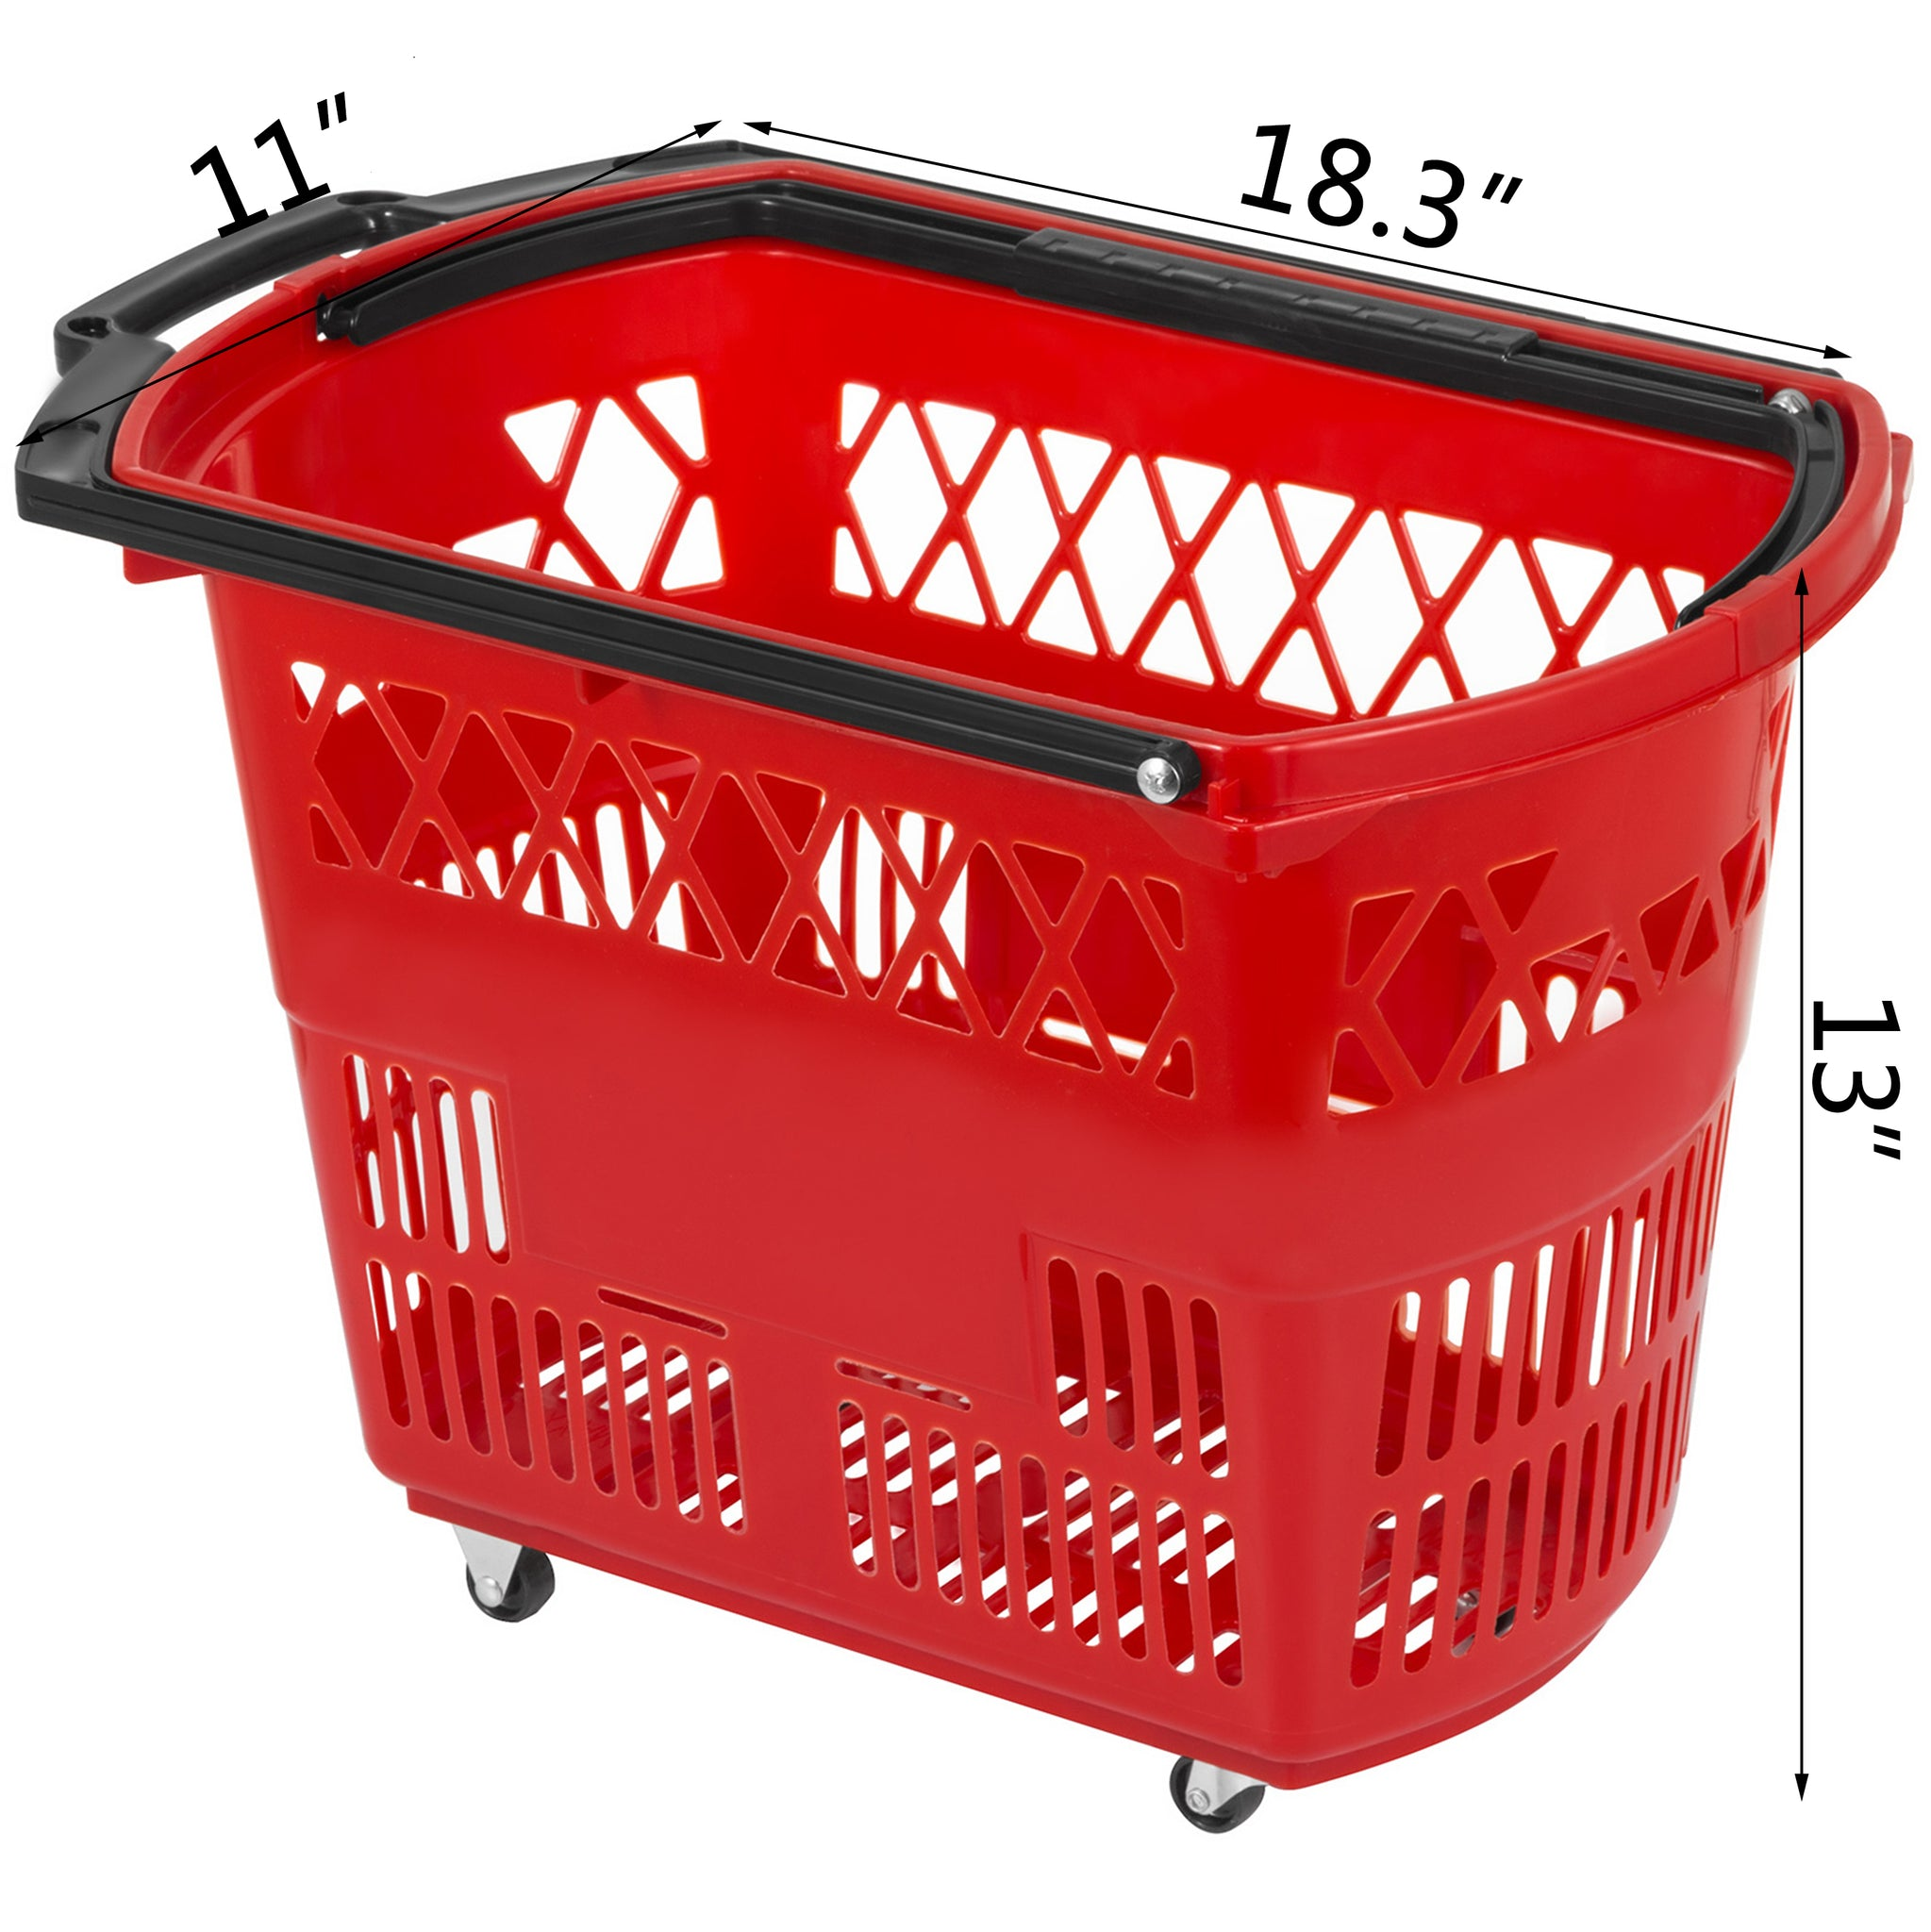 3pcs Red Shopping Basket 18.3x11x13in Shopping Lightweight Convenience Store